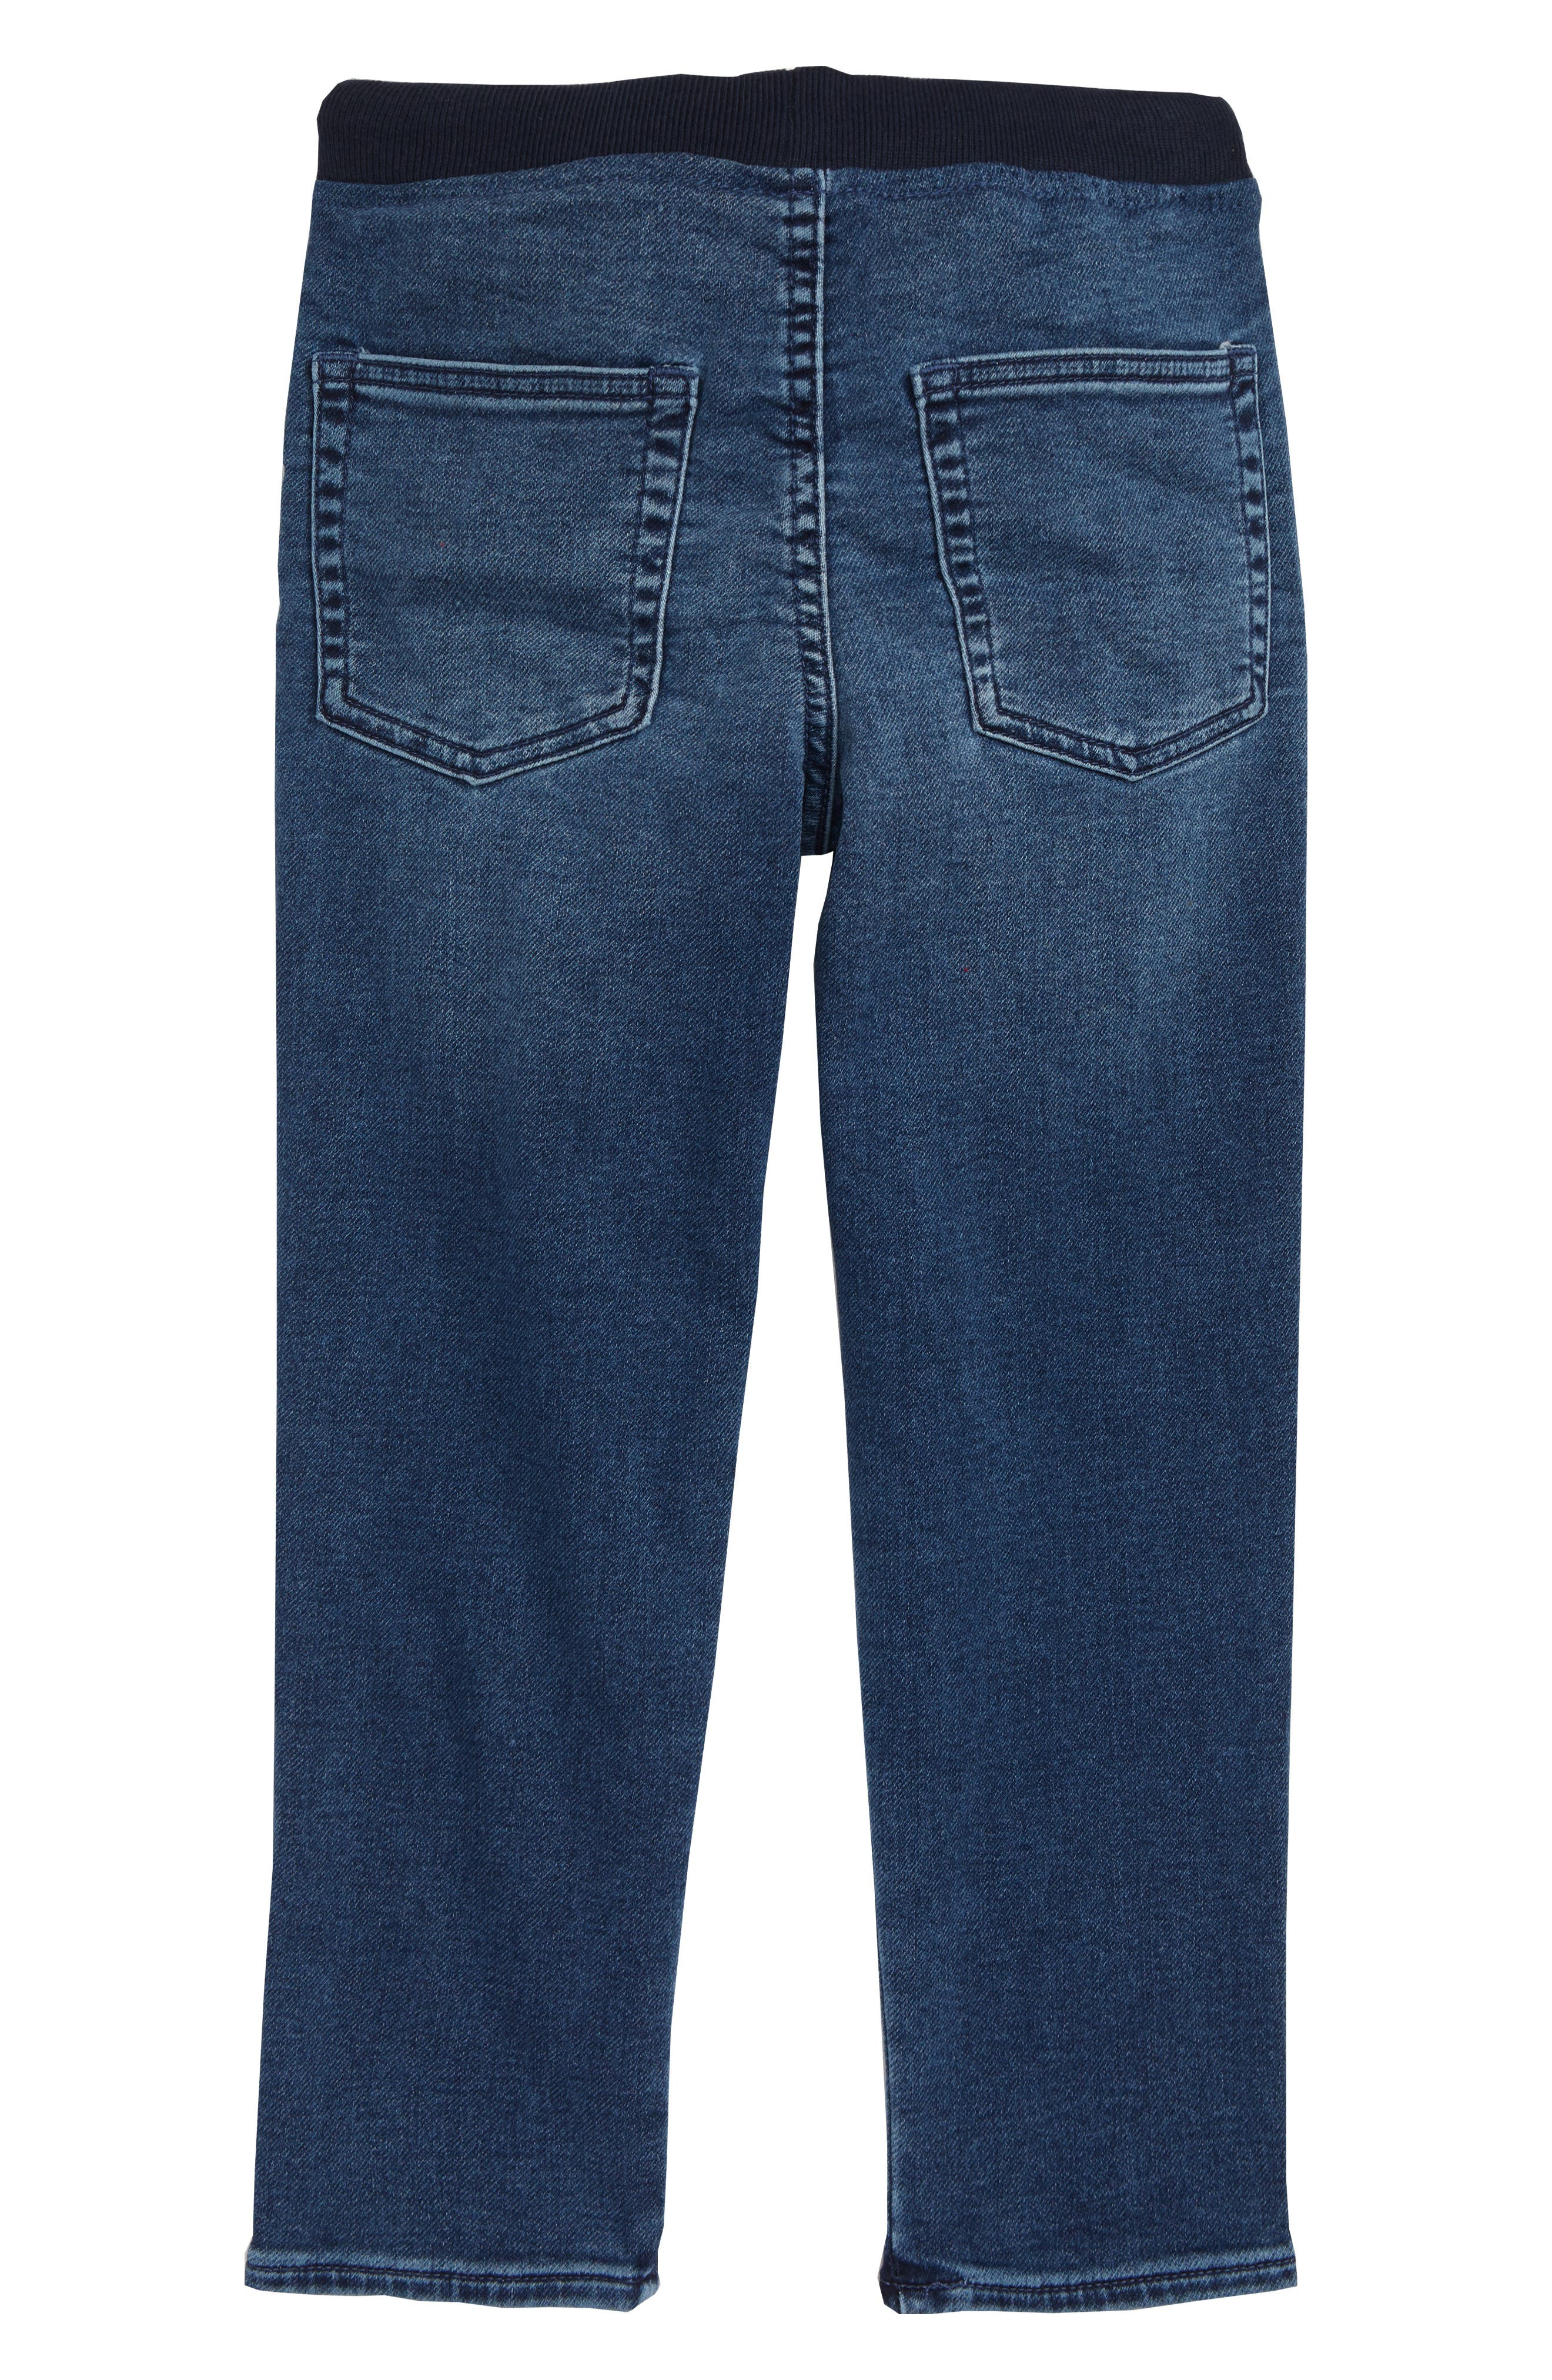 Runaround Pull-On Jeans,                             Alternate thumbnail 2, color,                             400